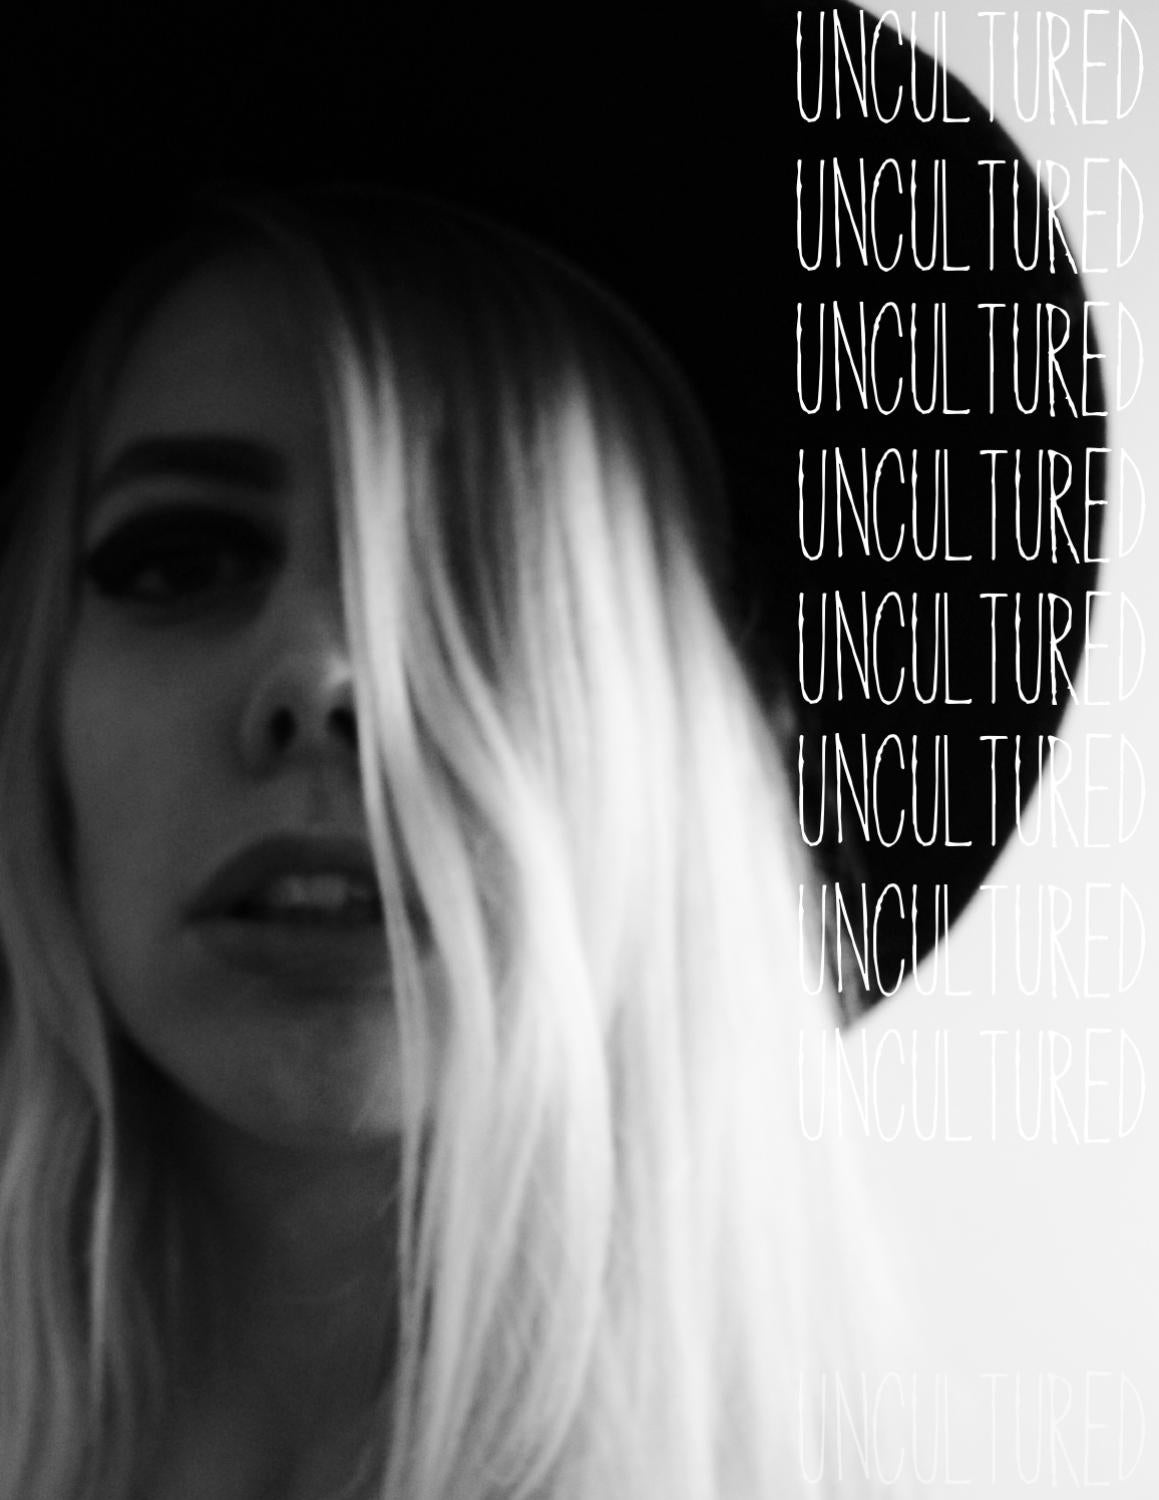 UNCULTURED 002 - WE ARE YOUNG AND WILD AND FREE by ...